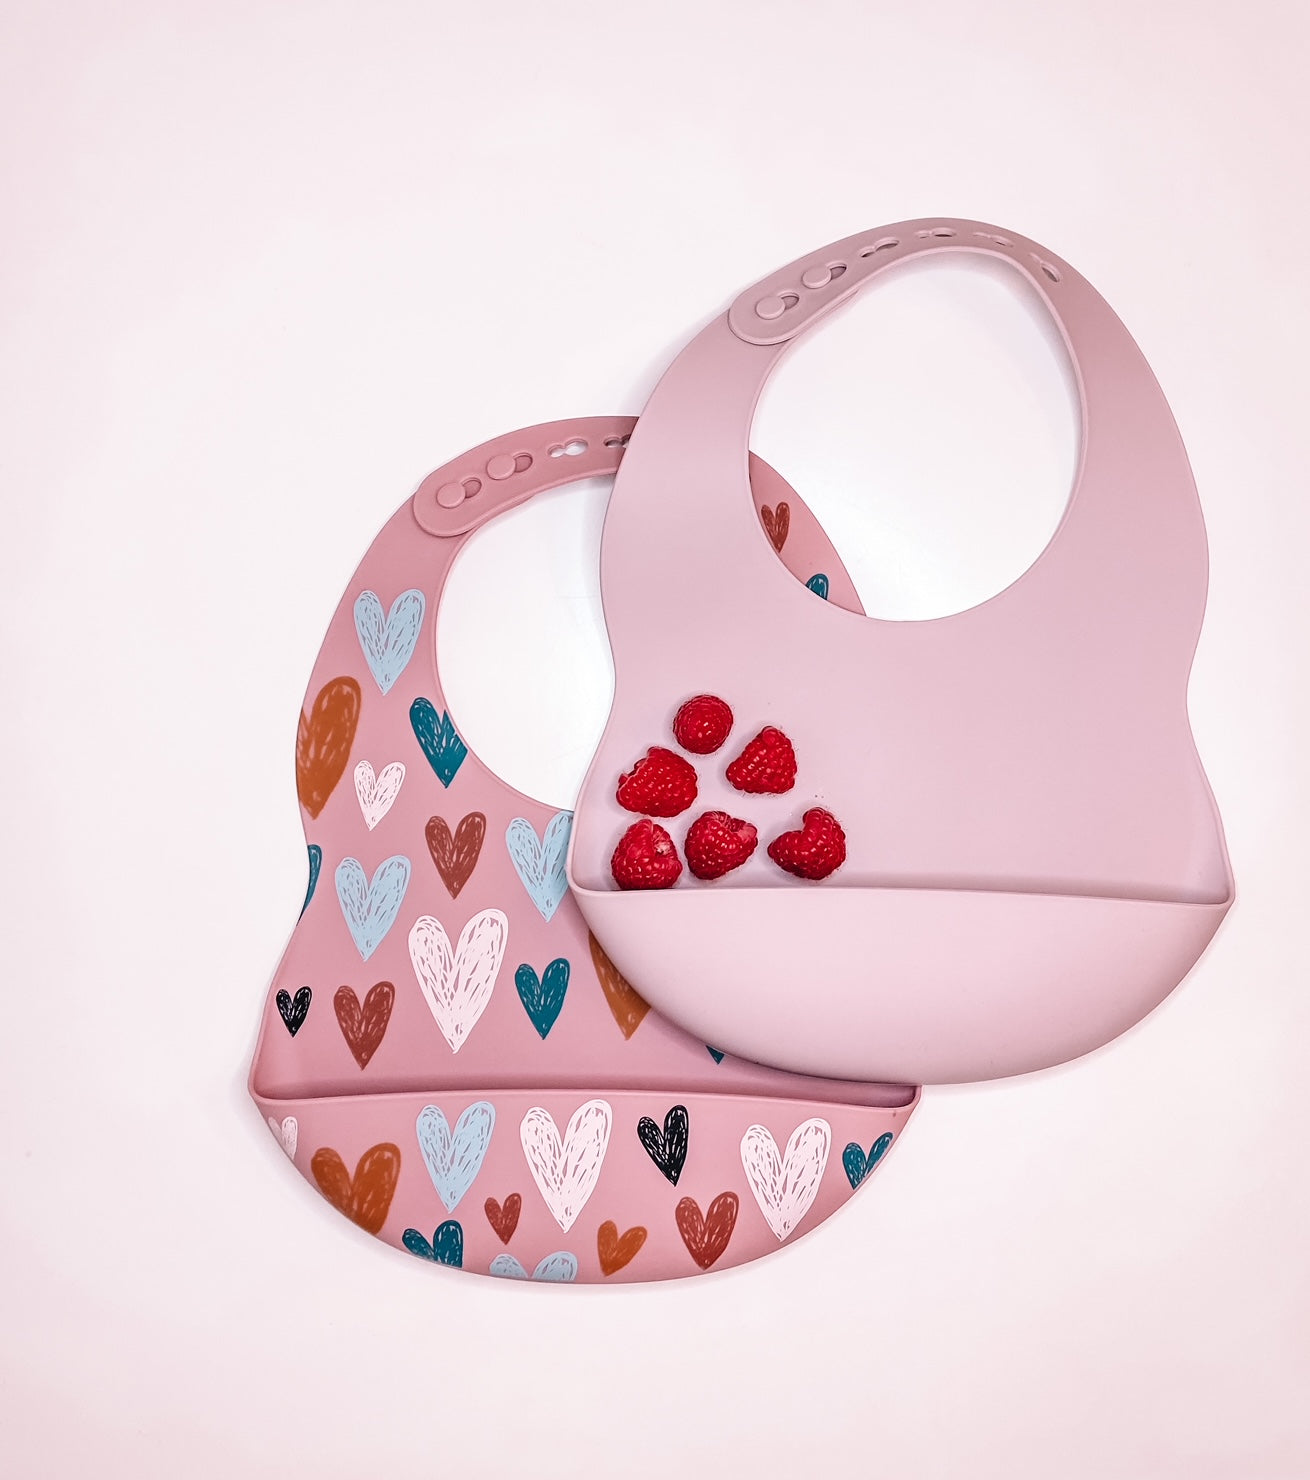 Silicone Bibs - Hearts and Dusty Rose